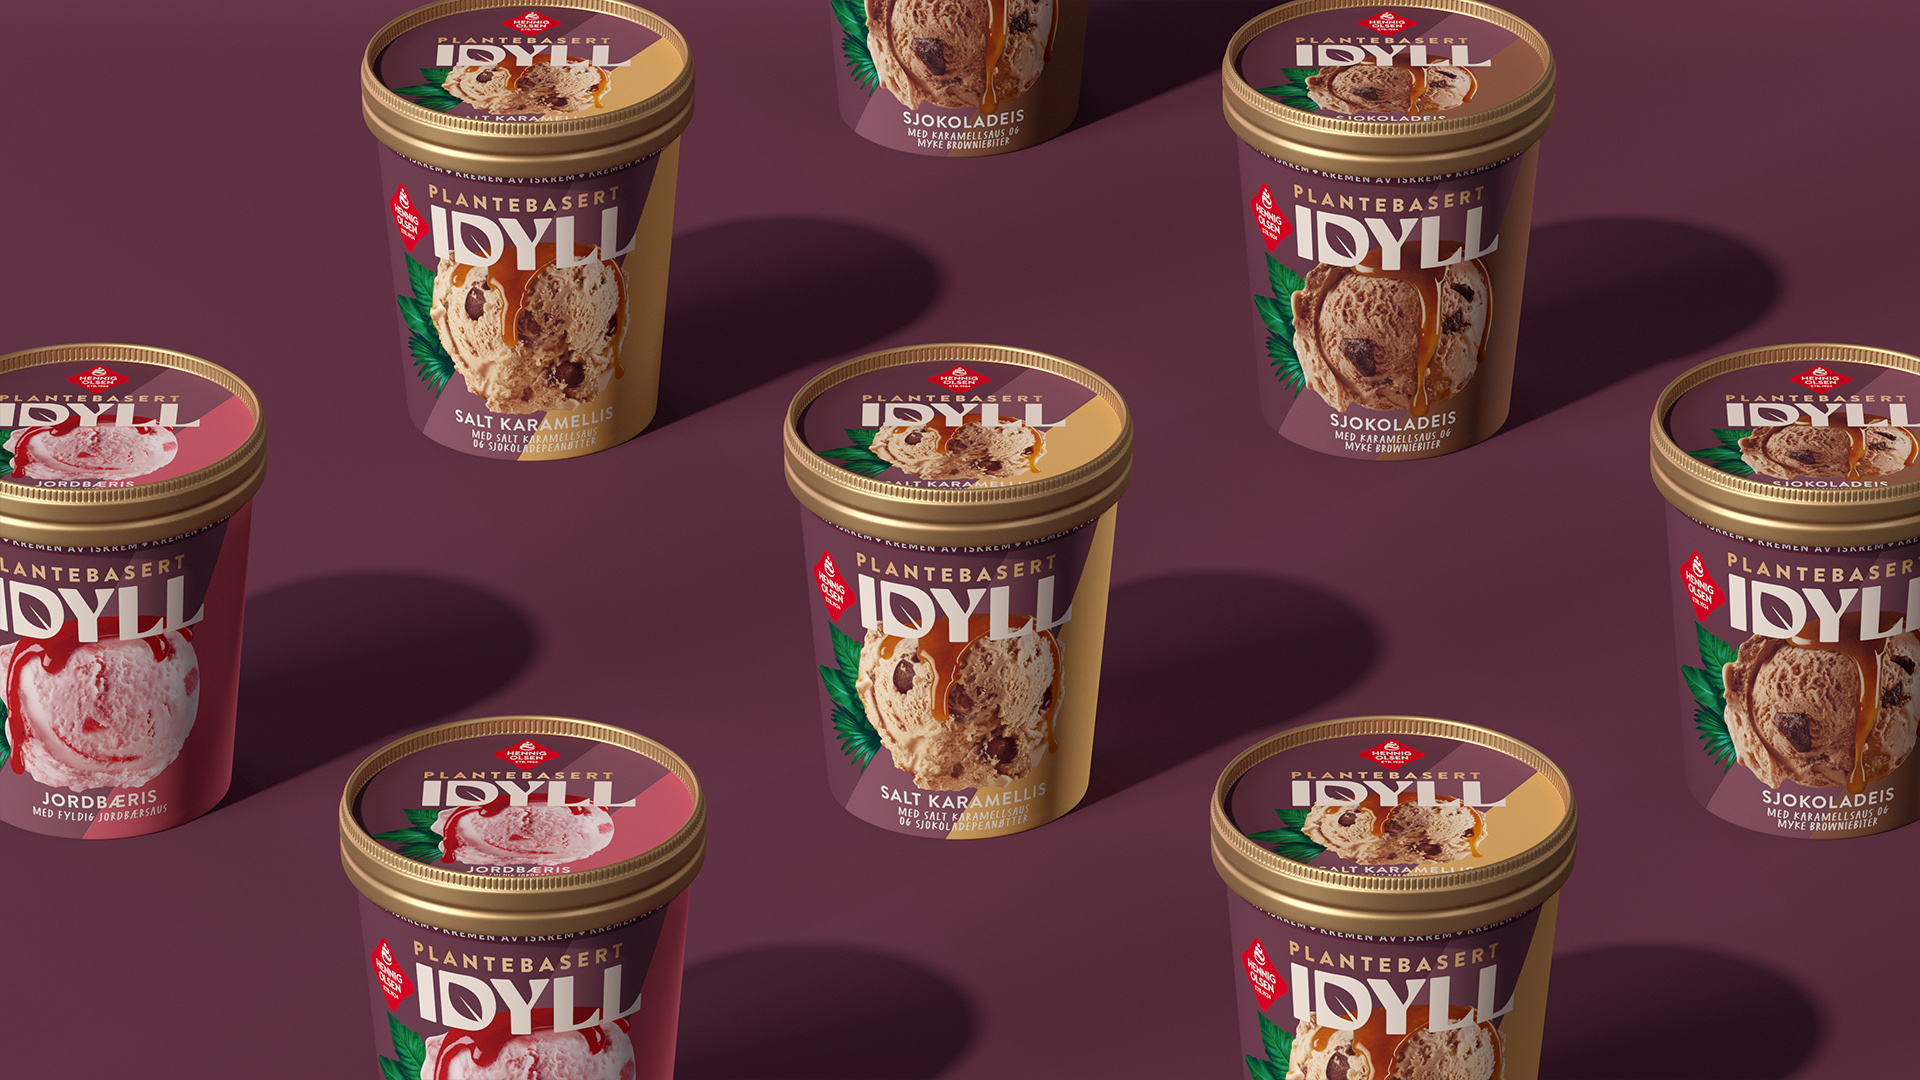 JDO Takes New Plant-Based Ice Cream Idyll to a Dark, Delicious Place